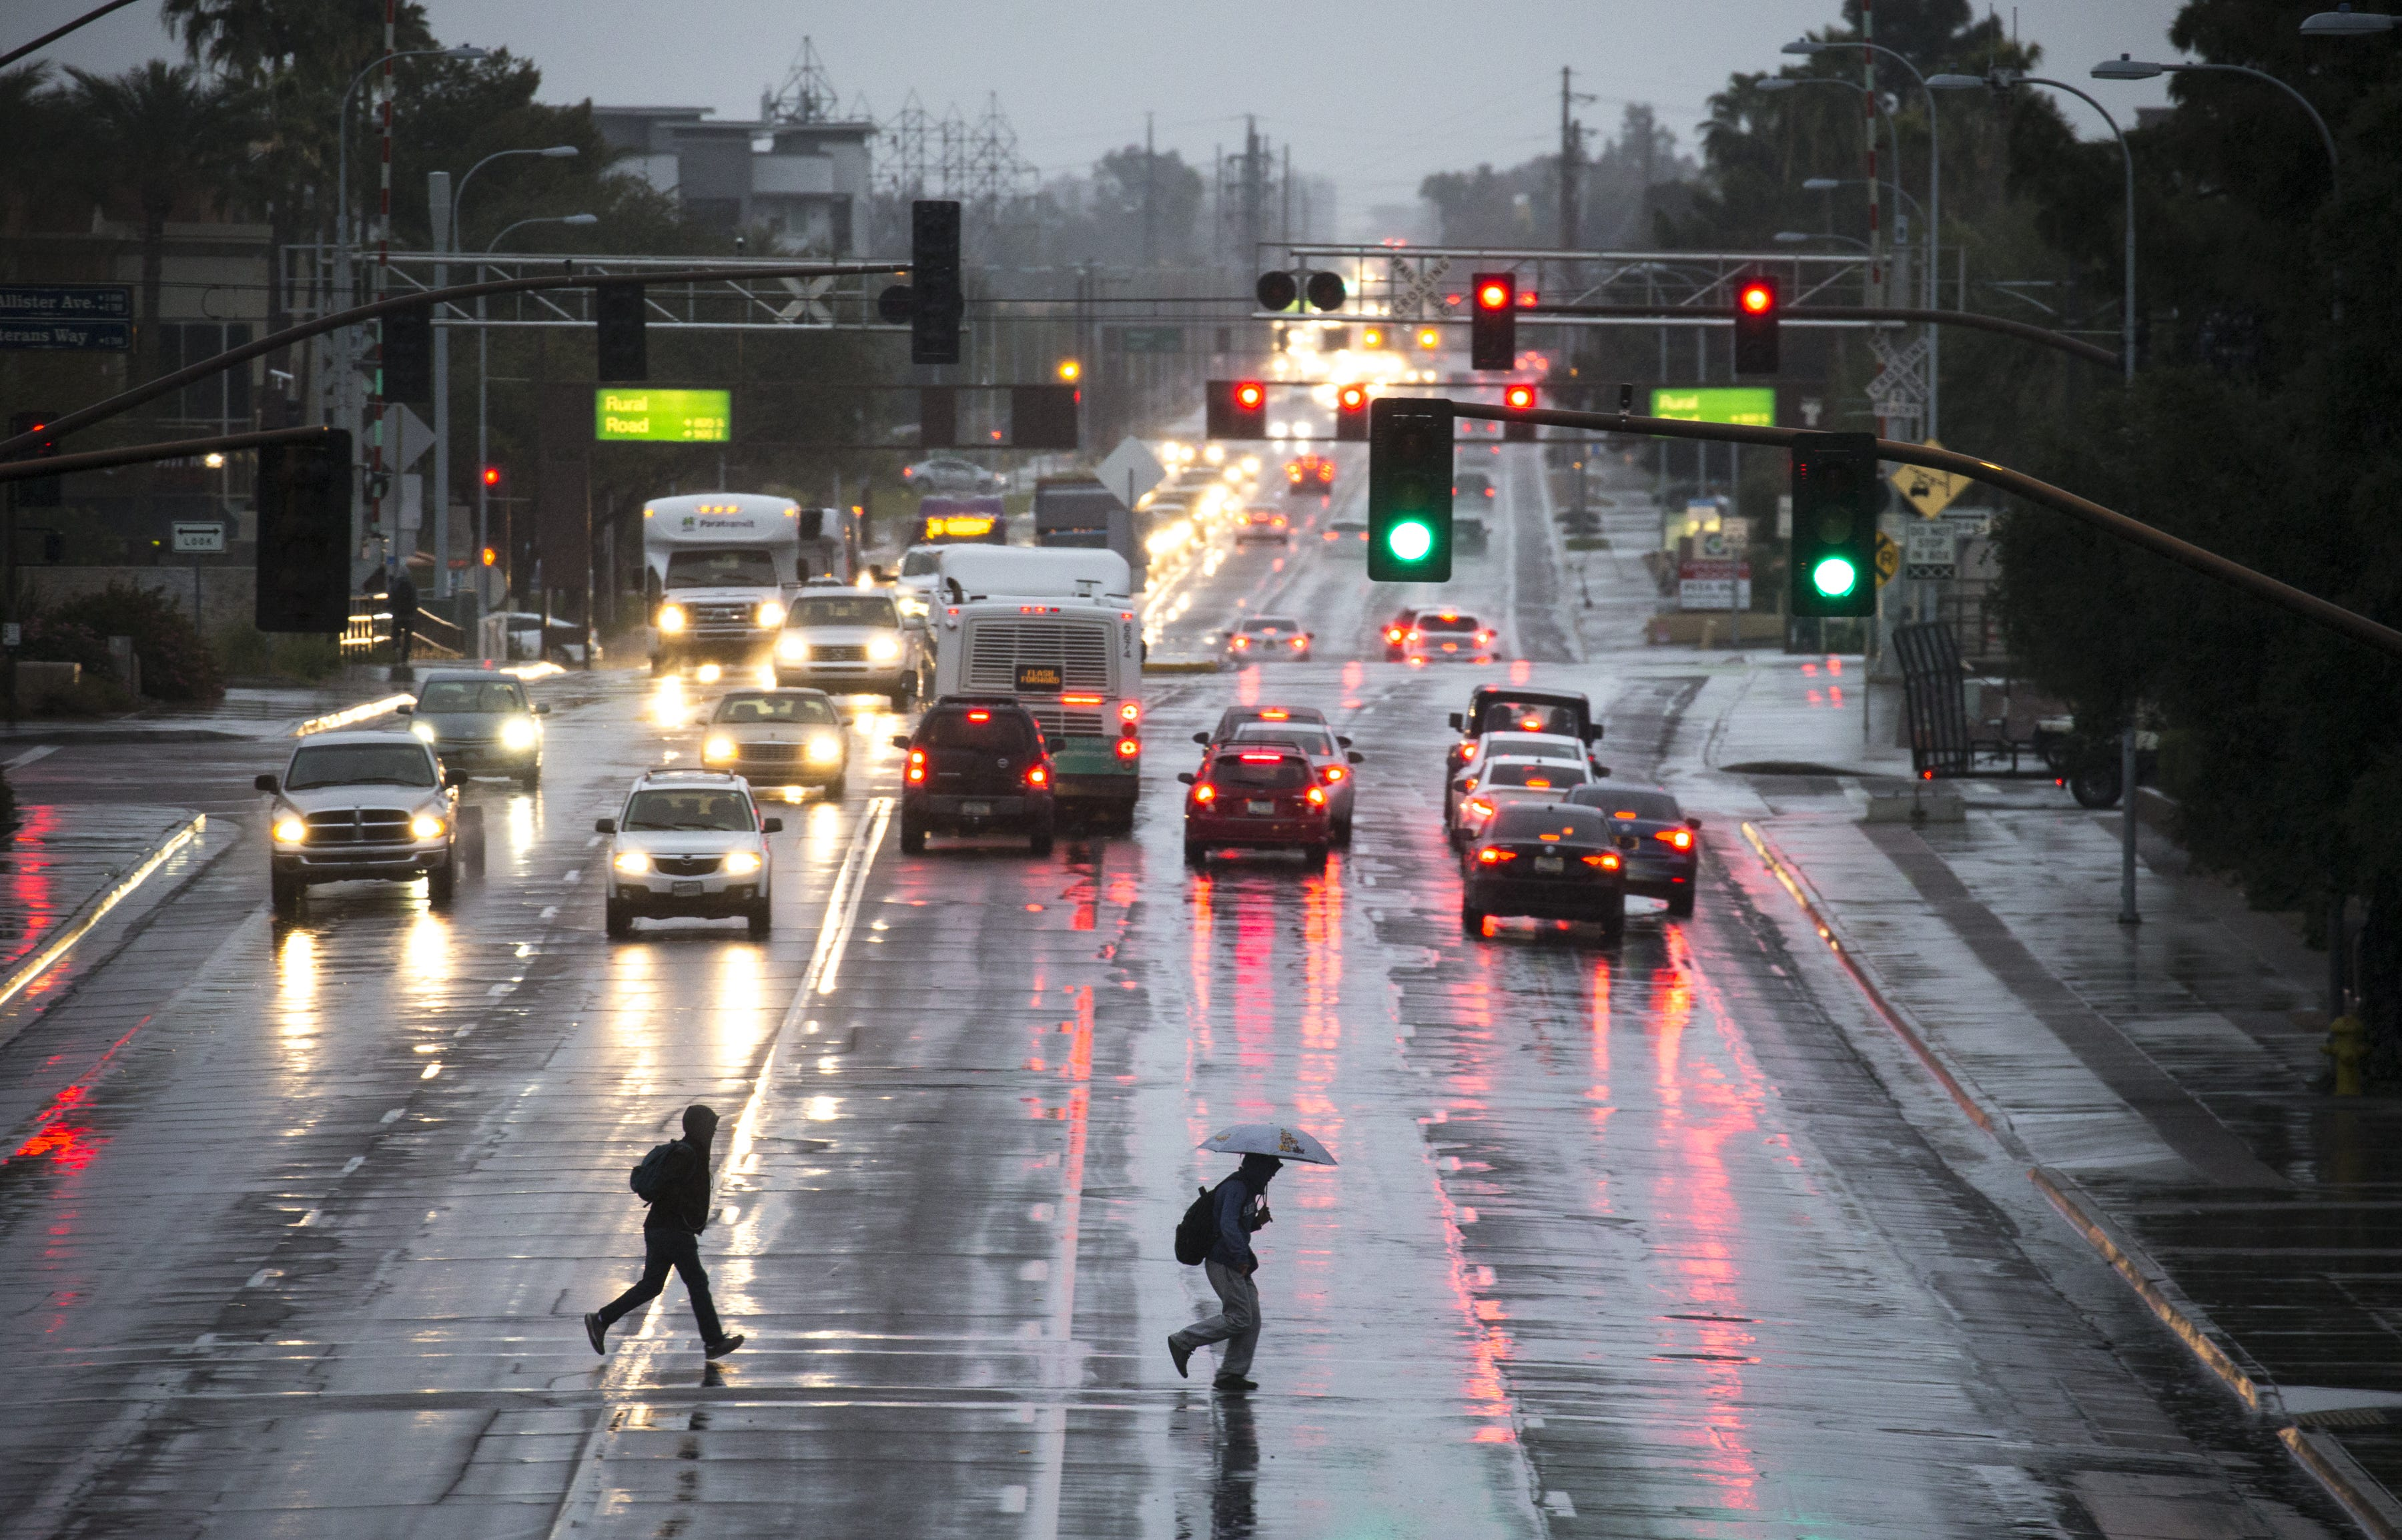 How much has Arizona wet its appetite for precipitation?